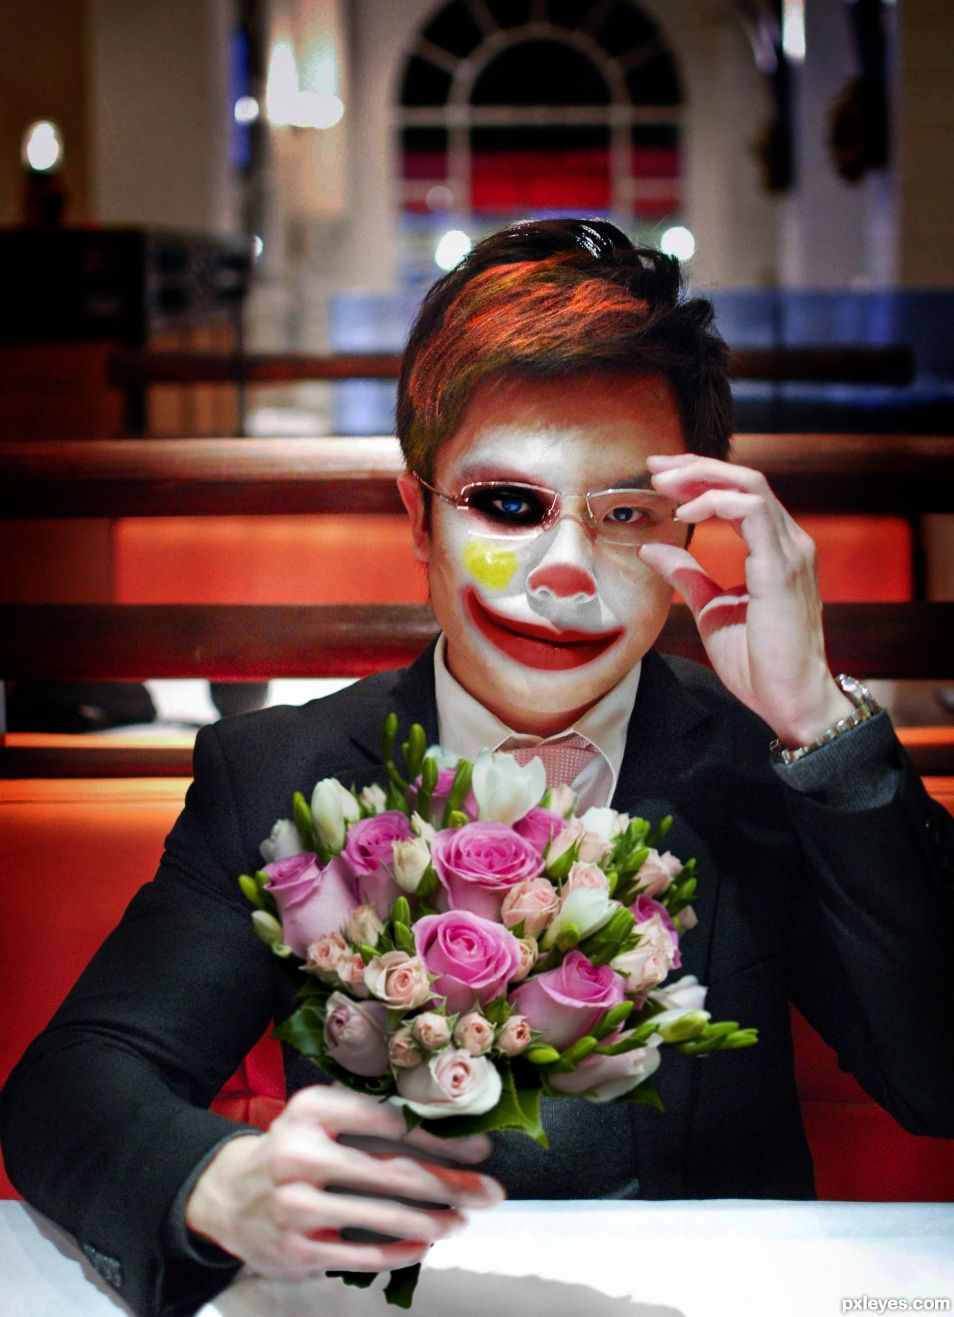 Whats wrong, honey? Take the flowers.